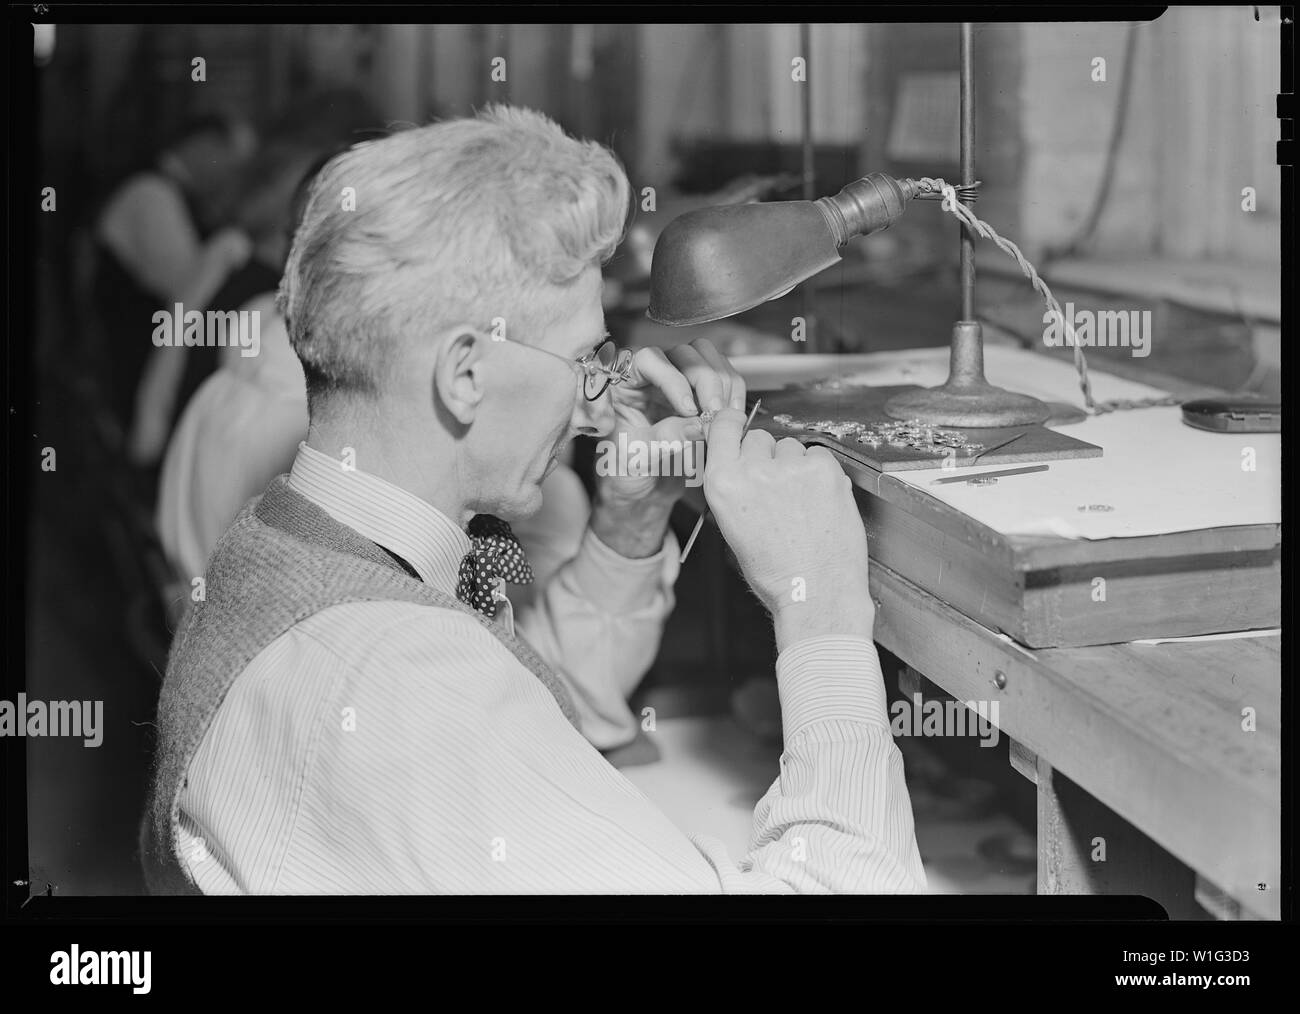 Lancaster, Pennsylvania - Hamilton Watch. Operation - inspecting plate - skilled inspecting job (all plates must undergo severe inspection covering all operations of drilling, tapping, recessing, and facing.) - Stock Image